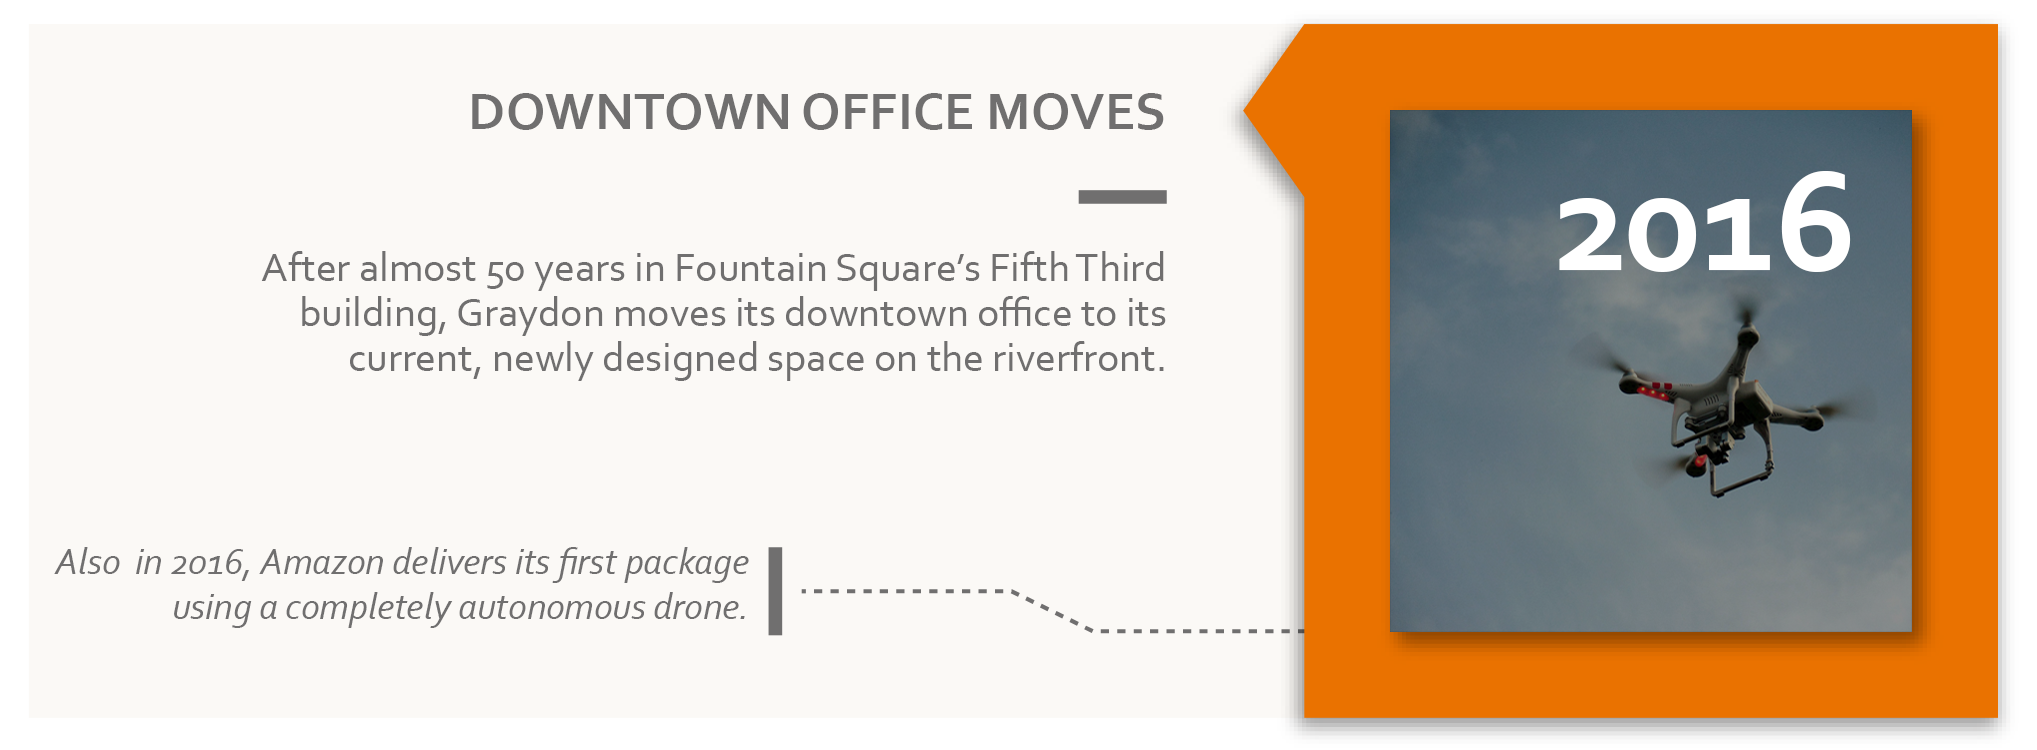 2016-Downtown-office-moves-Graydon